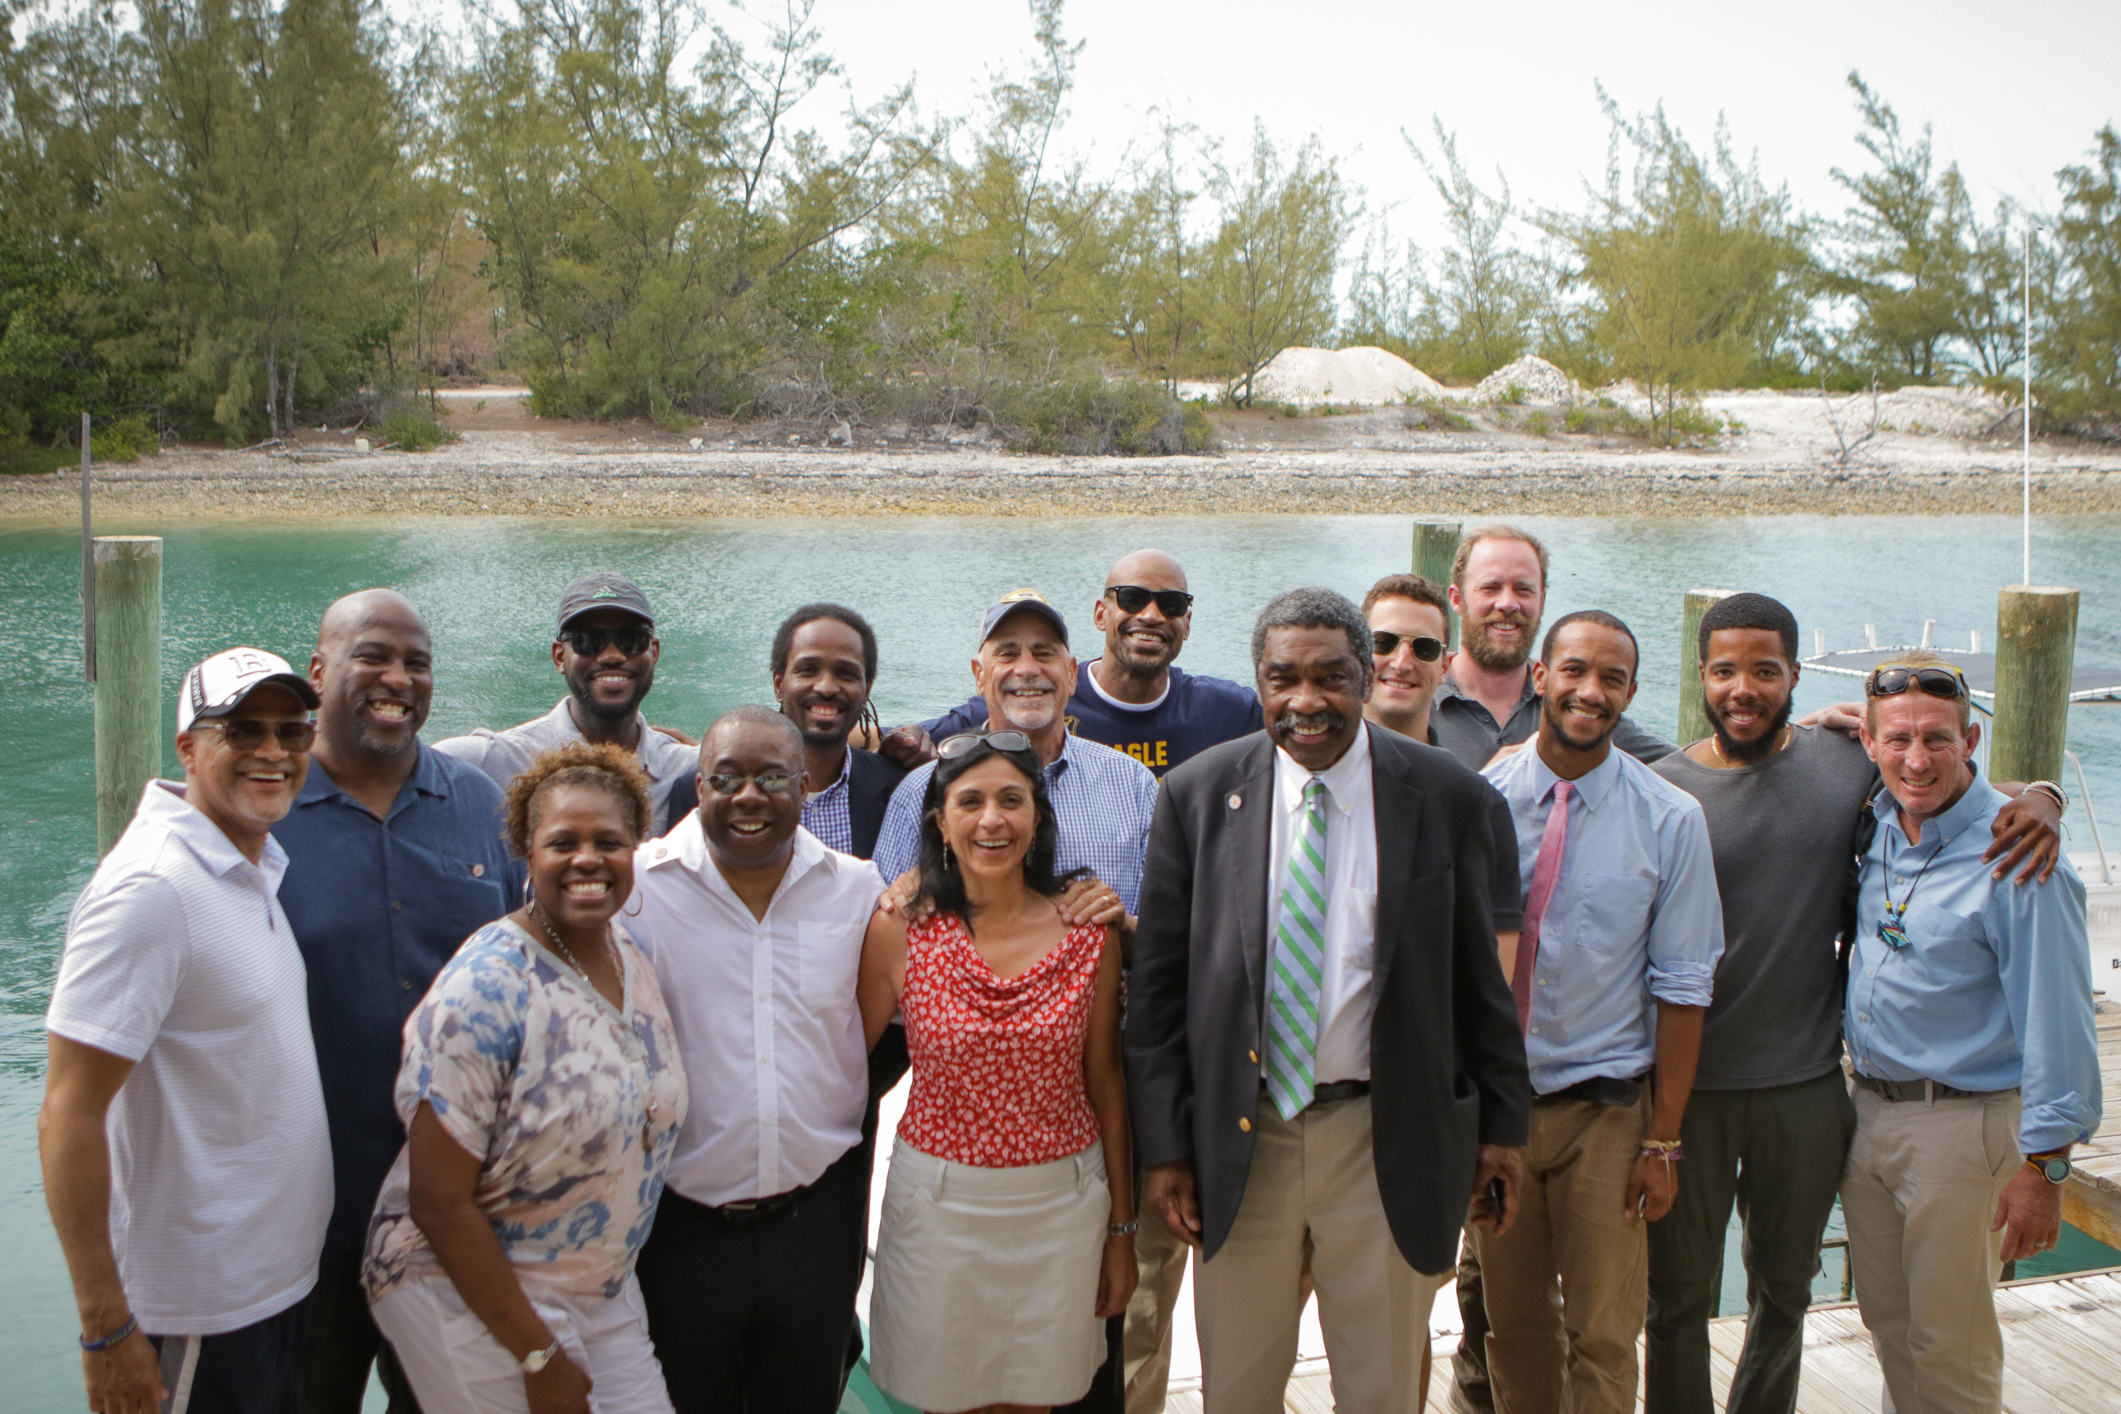 Local and International leaders gathered outside the Sydney C. DeVos Dive Center at The Island School